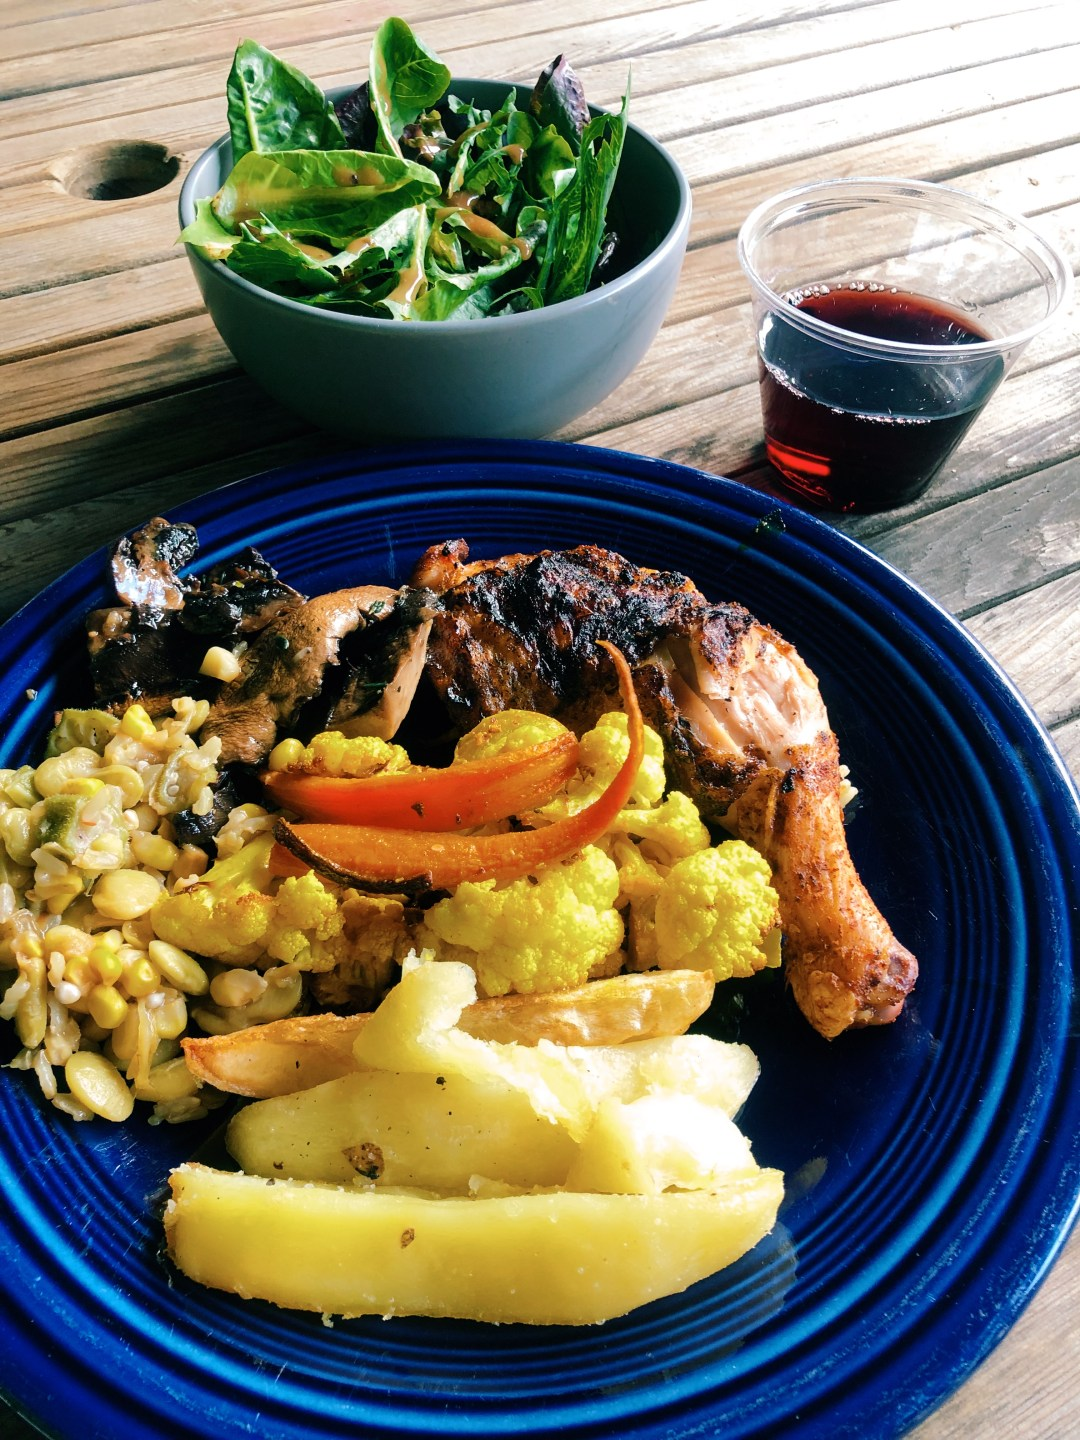 zap fitness adult summer camp meals